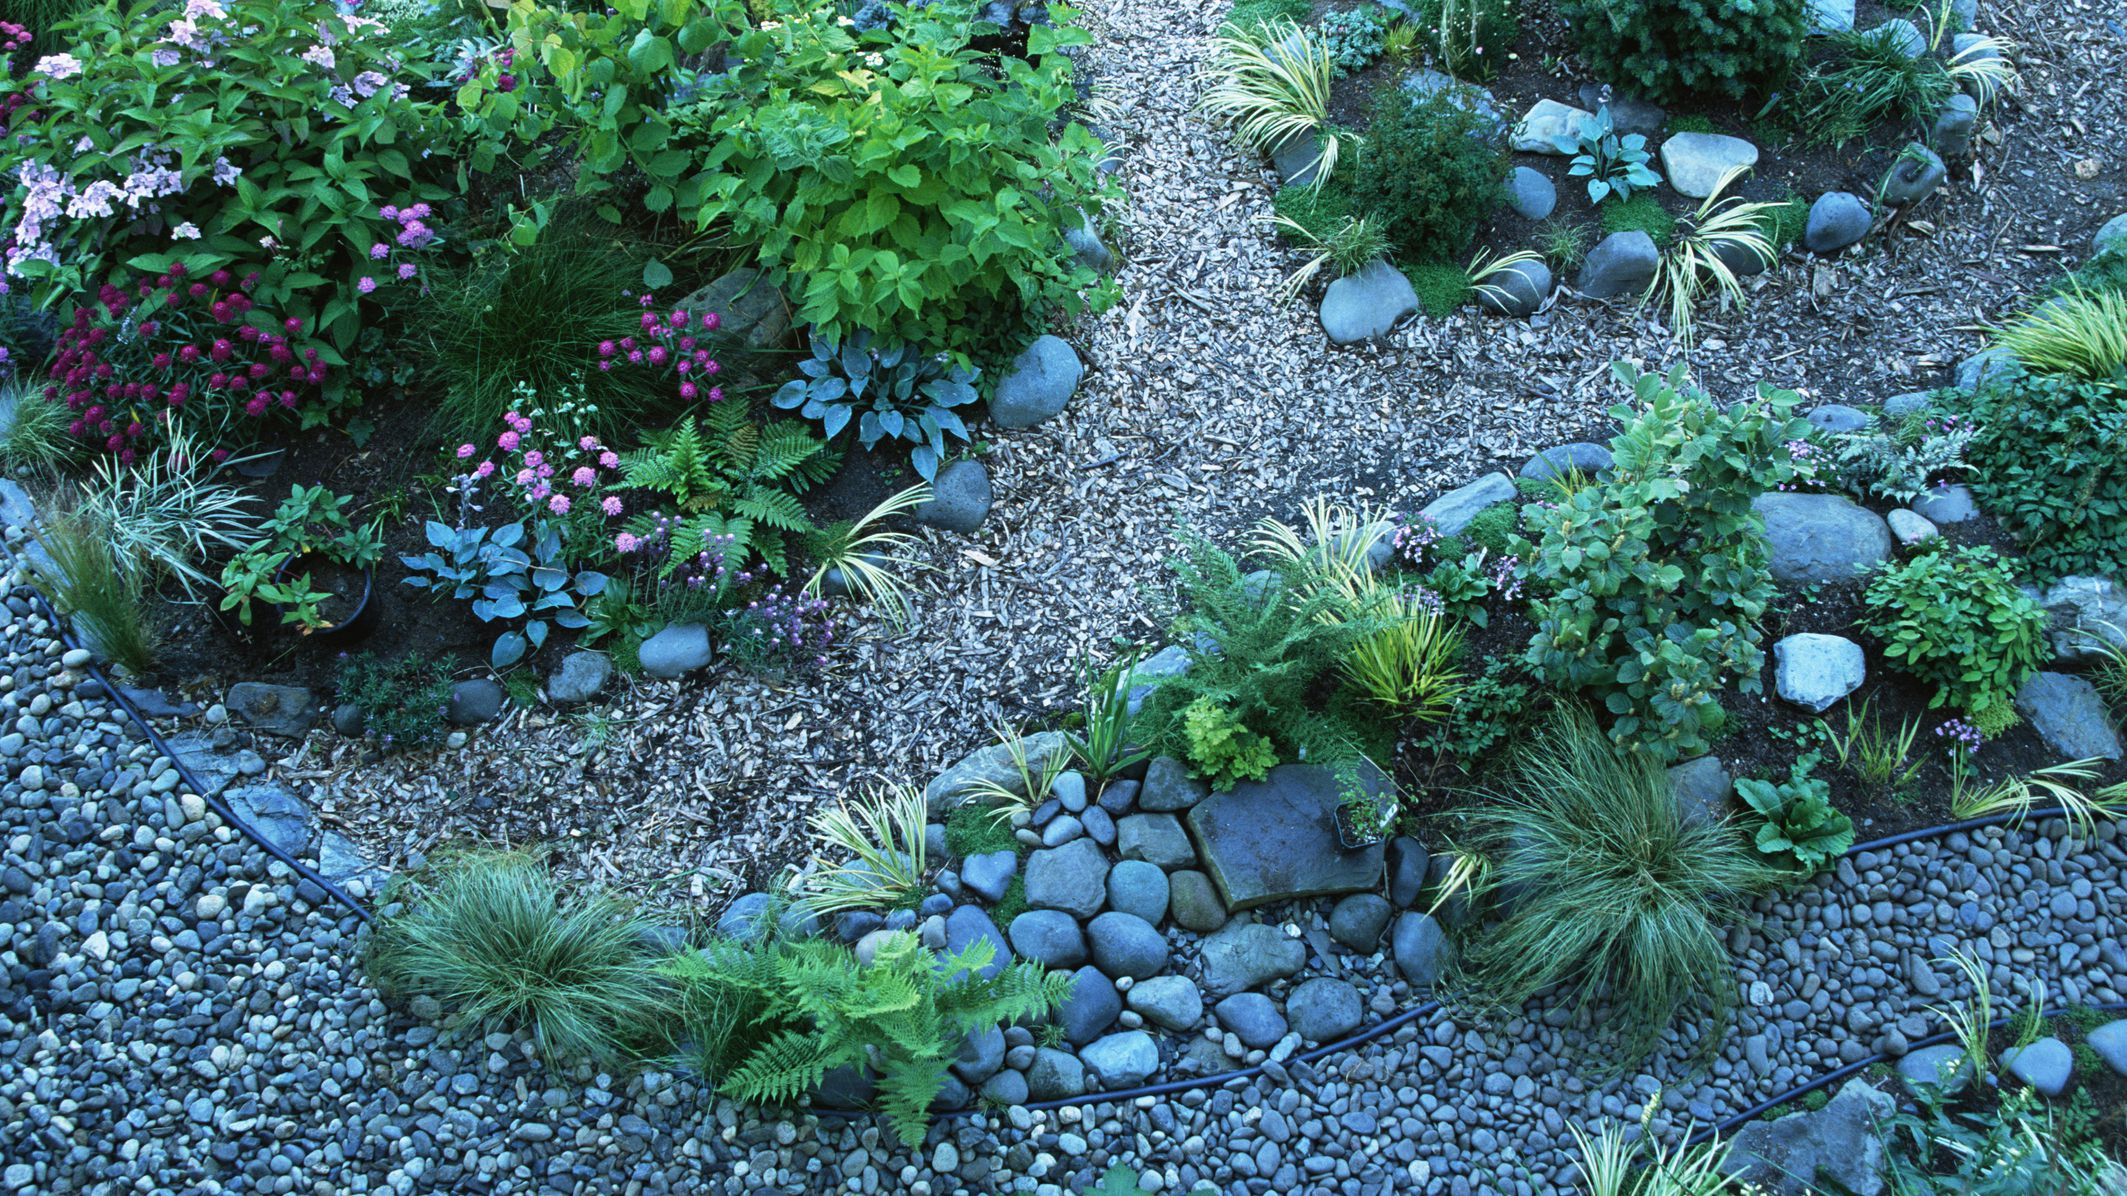 Rock Garden Design - What to Know, What to Grow on texas rock garden designs, desert rock garden designs, perennials rock garden designs, succulent rock garden designs, contemporary rock garden designs, japanese rock garden designs, zen rock garden designs, cottage rock garden designs, plants rock garden designs, modern rock garden designs, easy rock garden designs, shade rock garden designs,